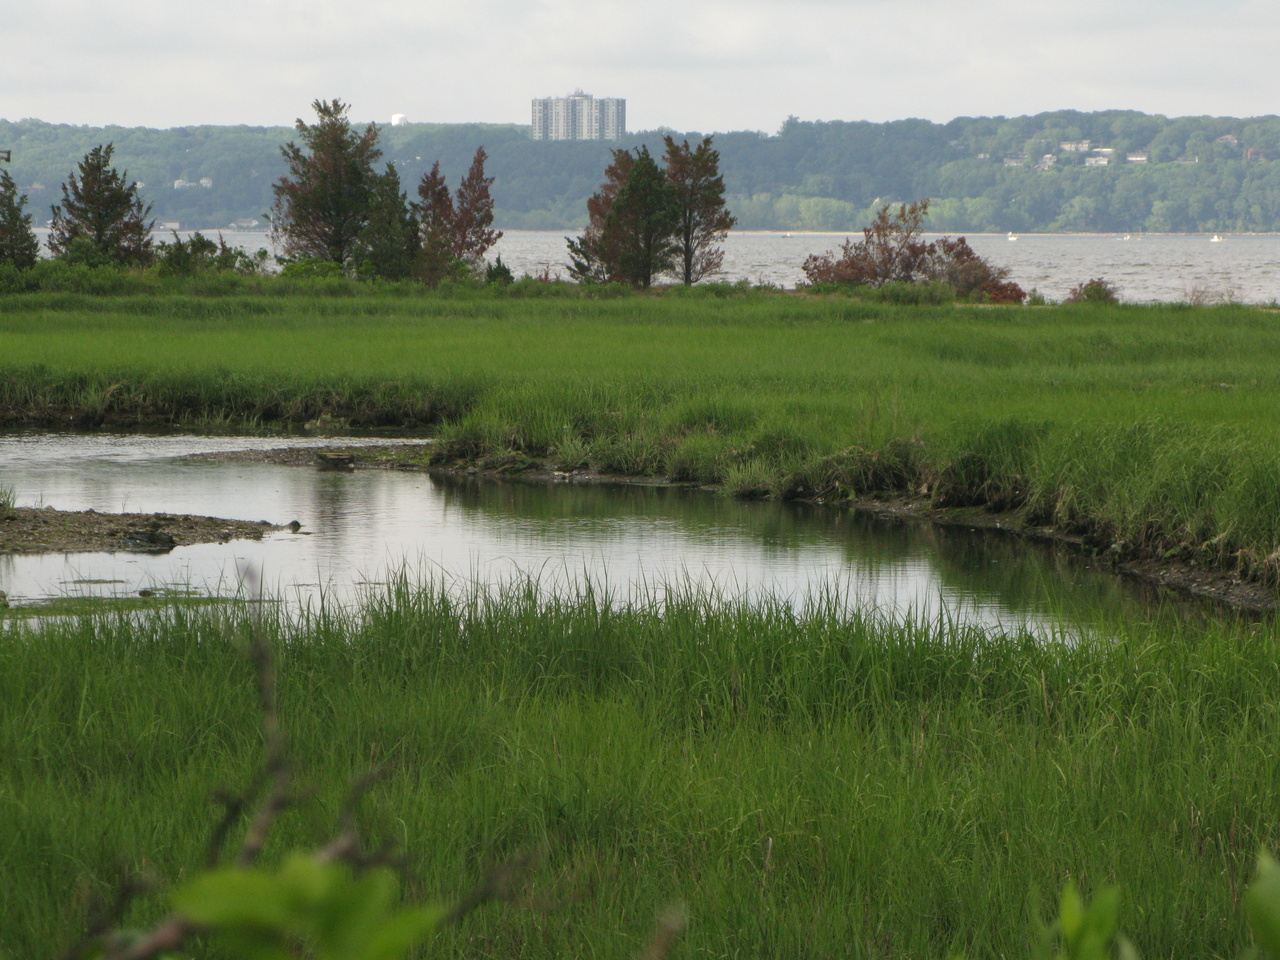 wetland habitat with water and green grasses